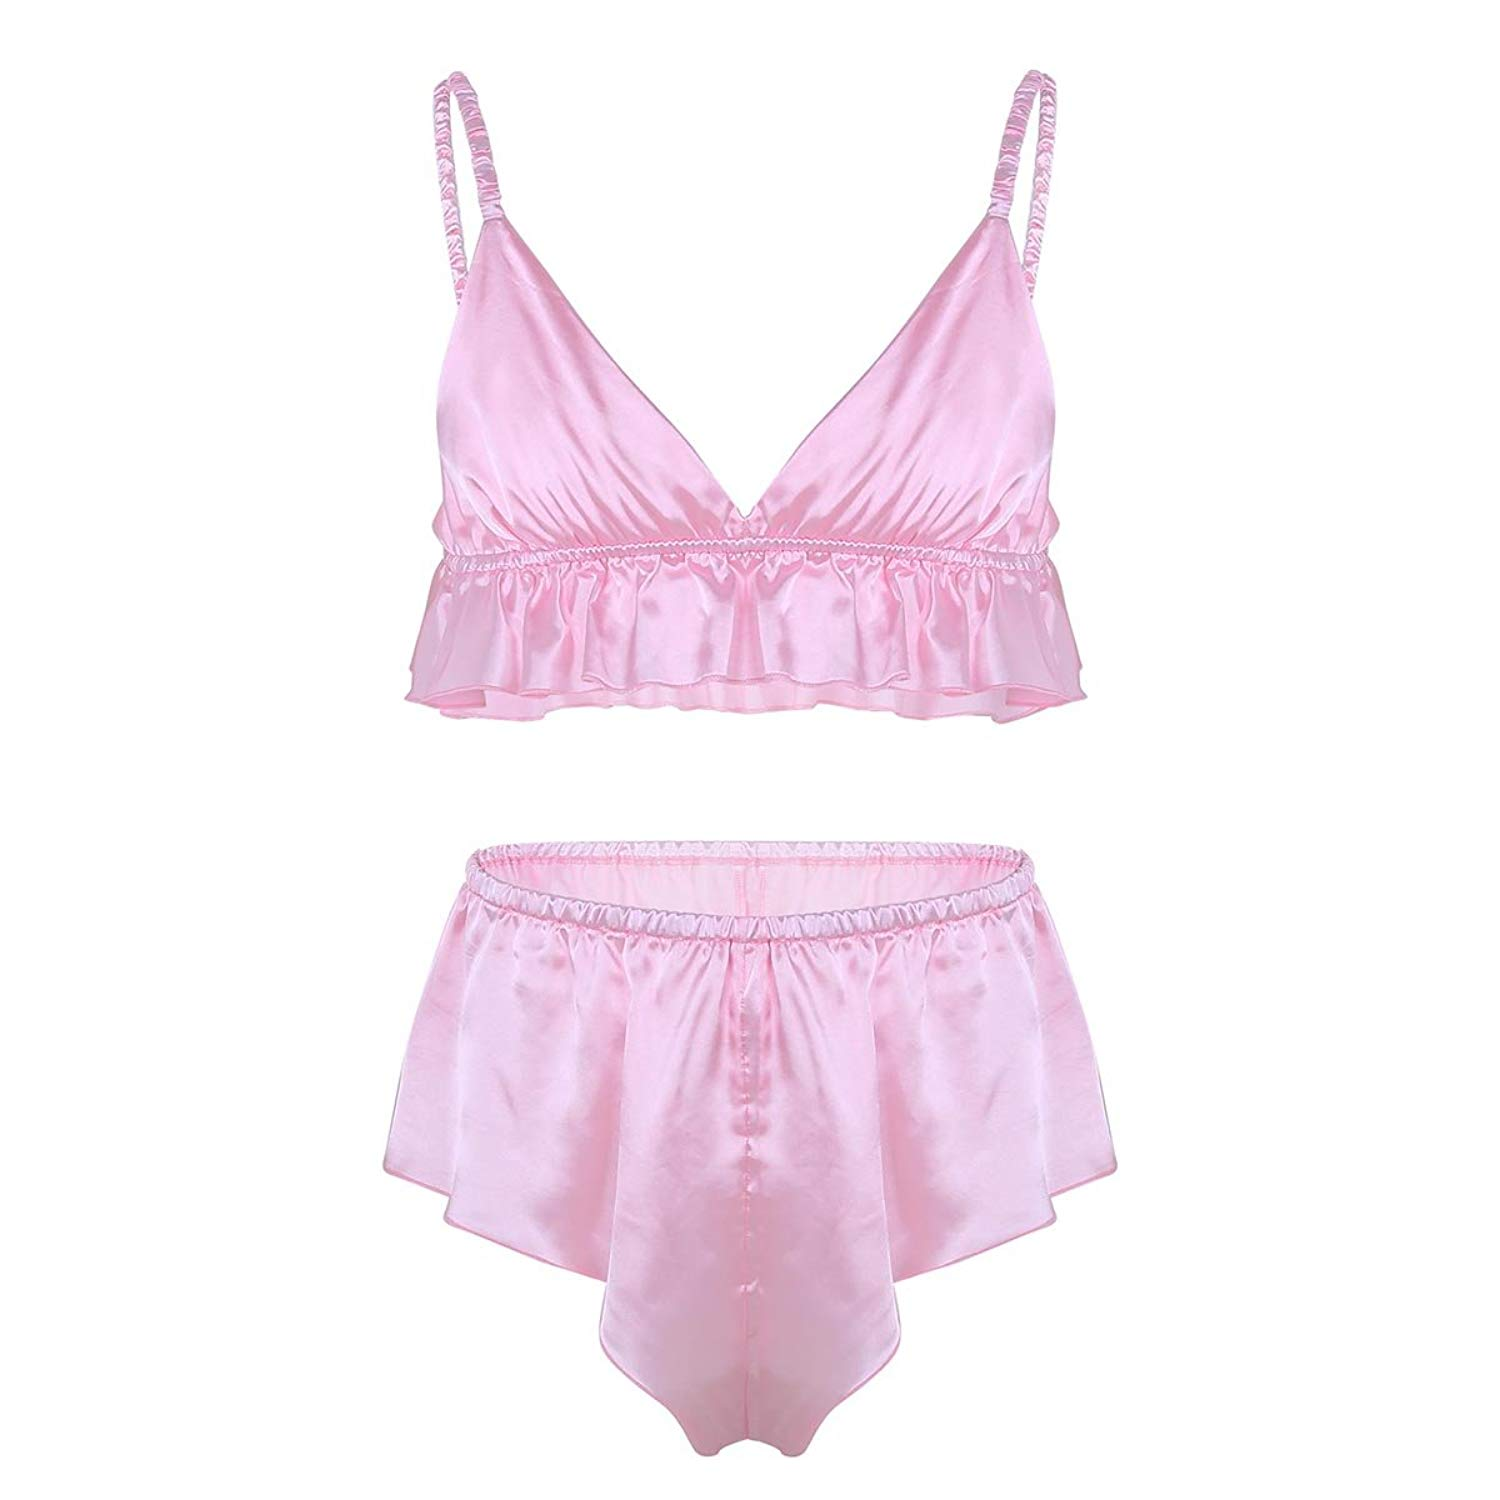 54817bb474cfa Get Quotations · ACSUSS Men s 2 Pieces Sissy Lingerie Silky Bra Top Loose  Crossdress Panties Set